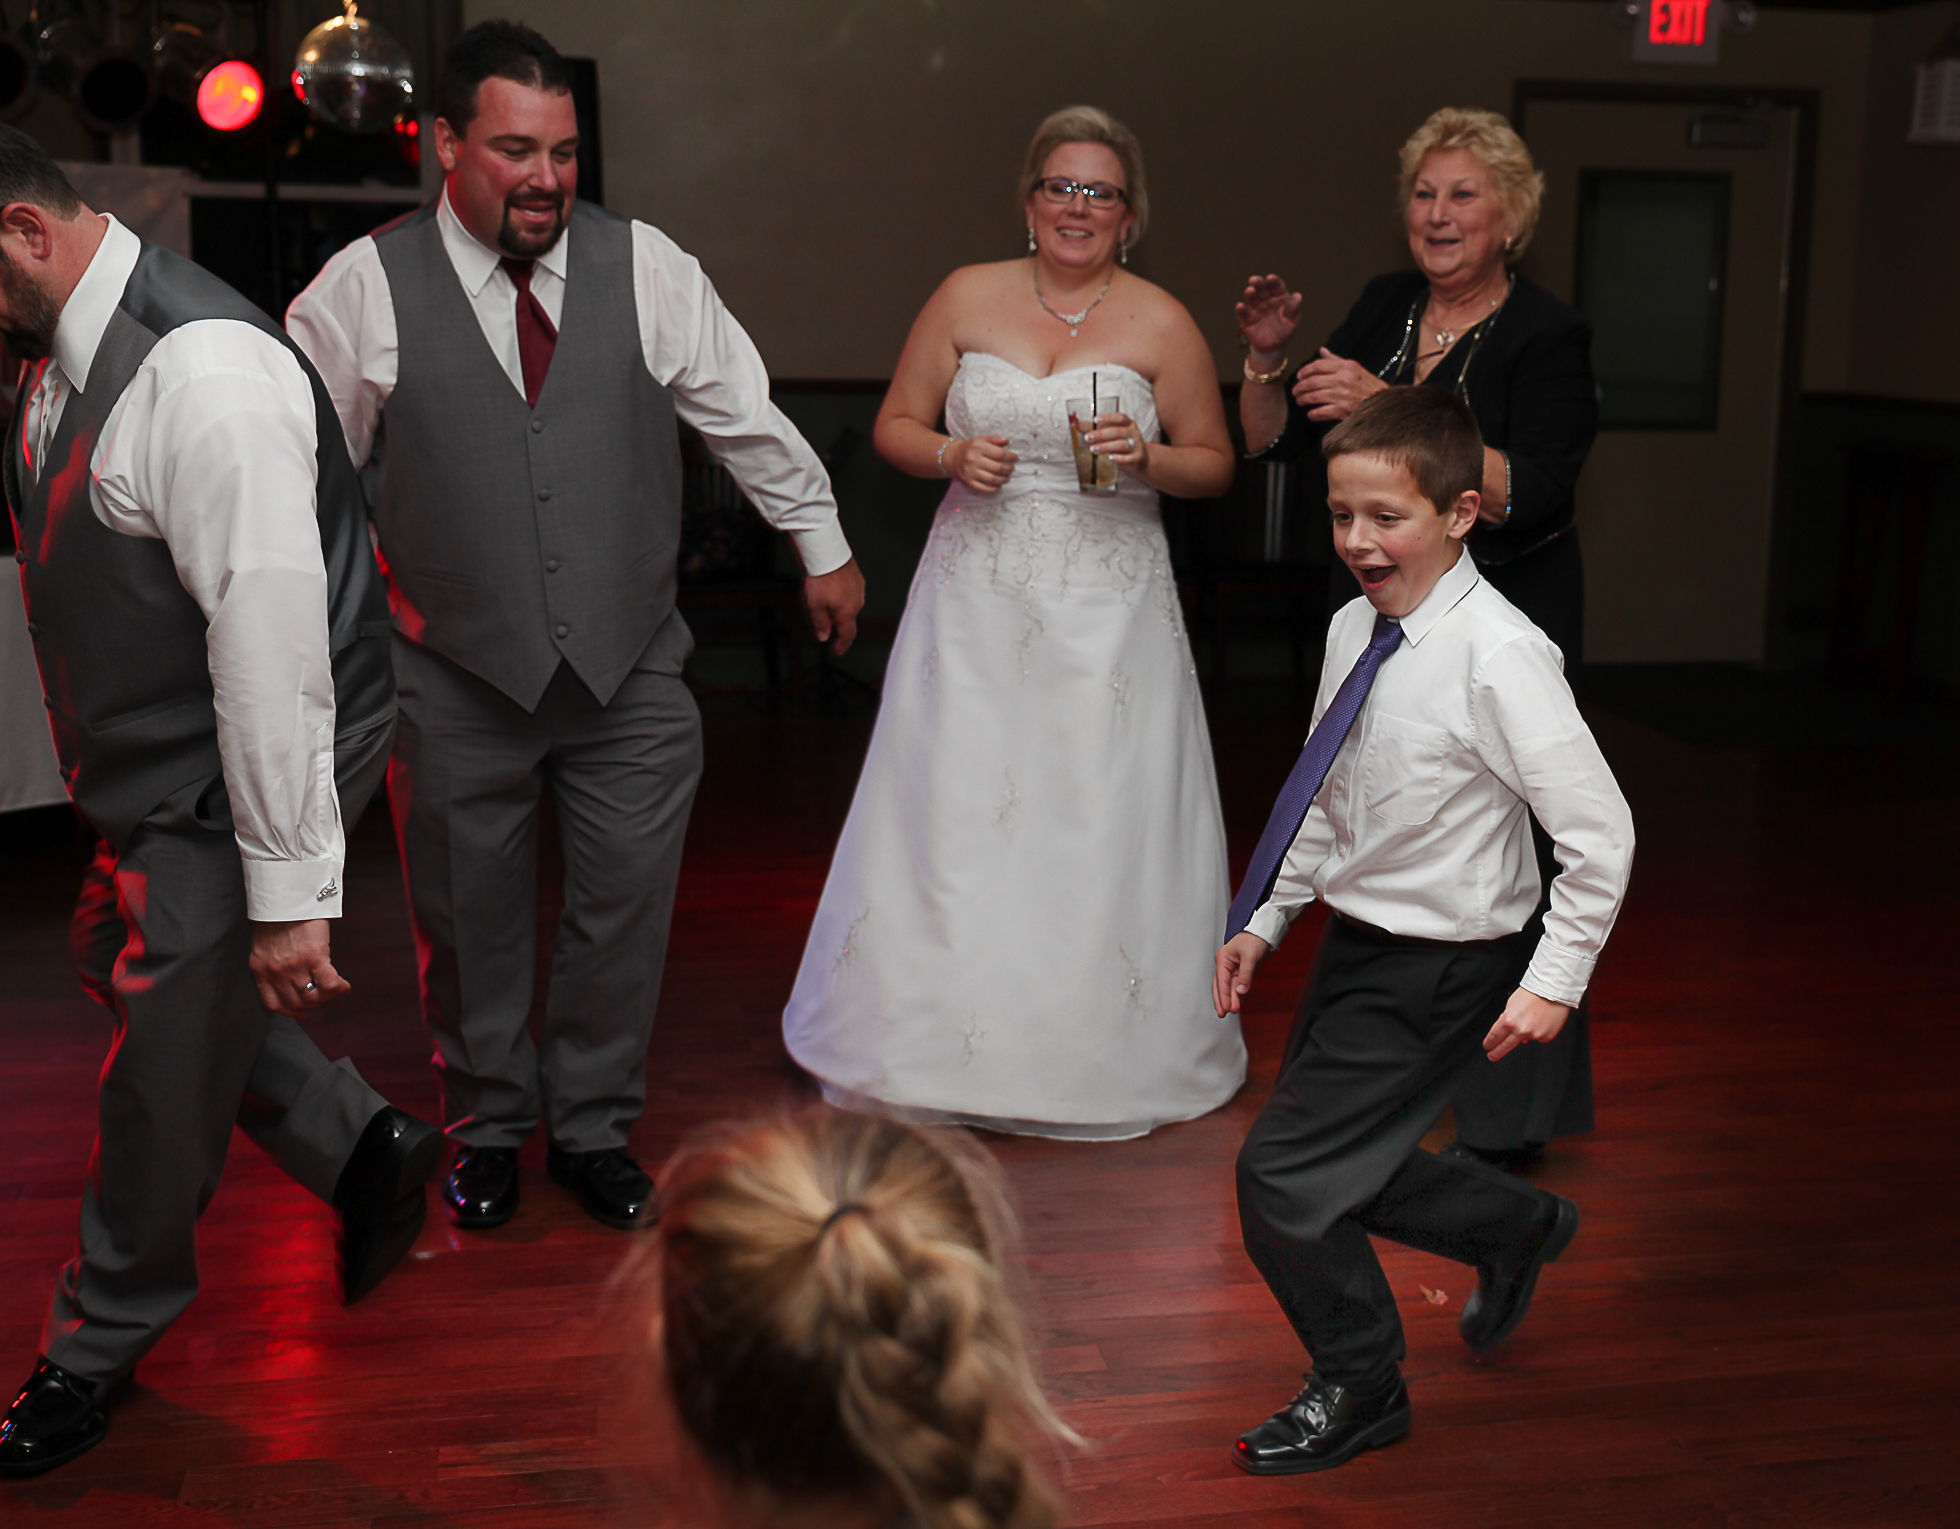 Grippe Wedding (107 of 119).jpg